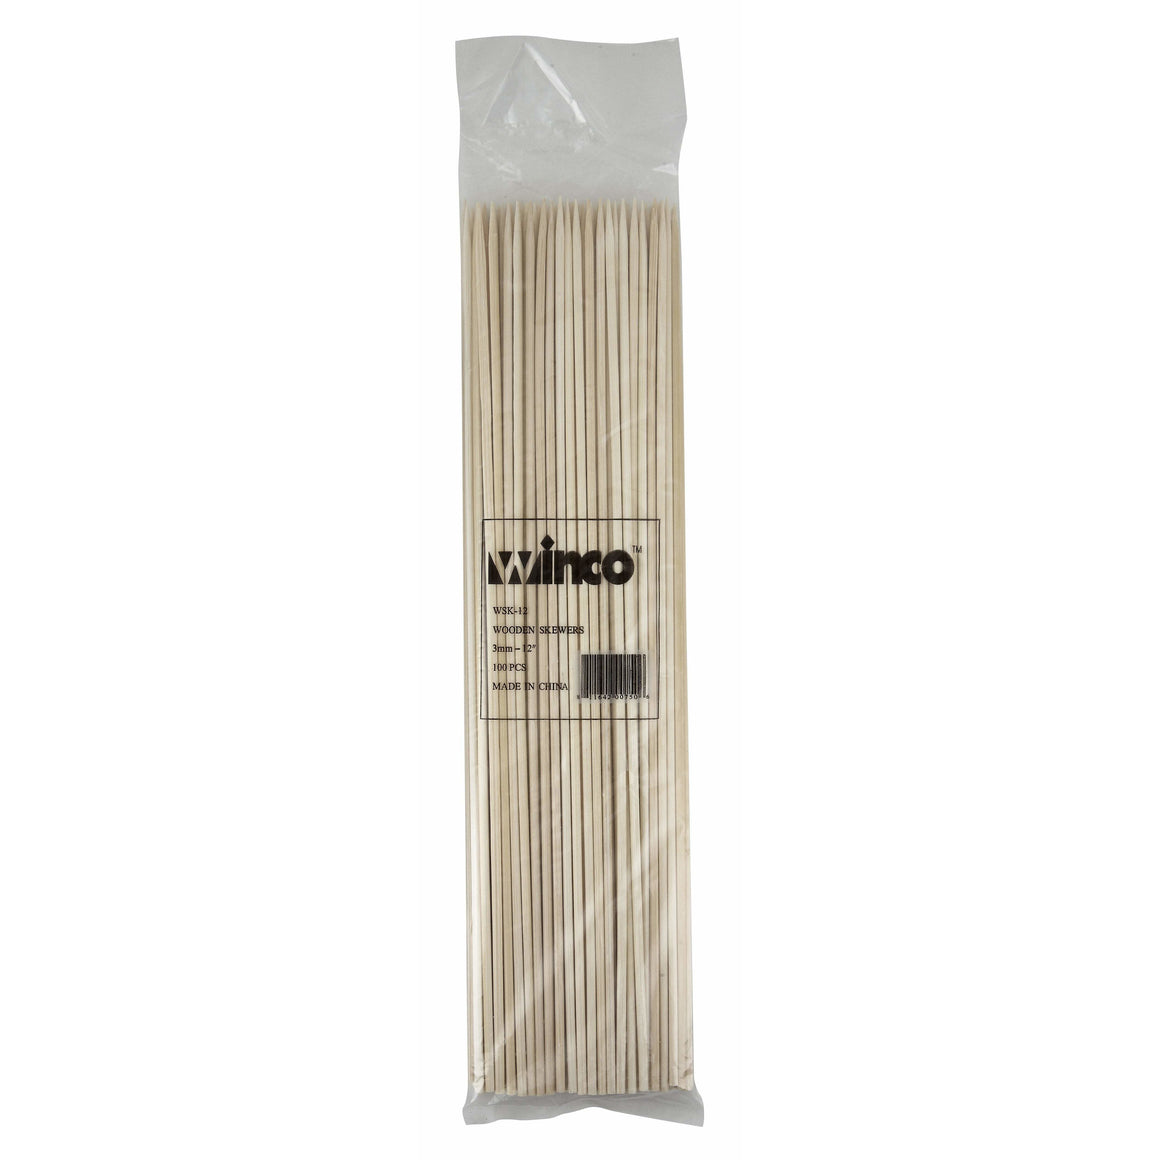 "Winco - WSK-12 - 12"" Bamboo Skewers, 100/bag - Kitchen Utensils - Maltese & Co New and Used  restaurant Equipment"